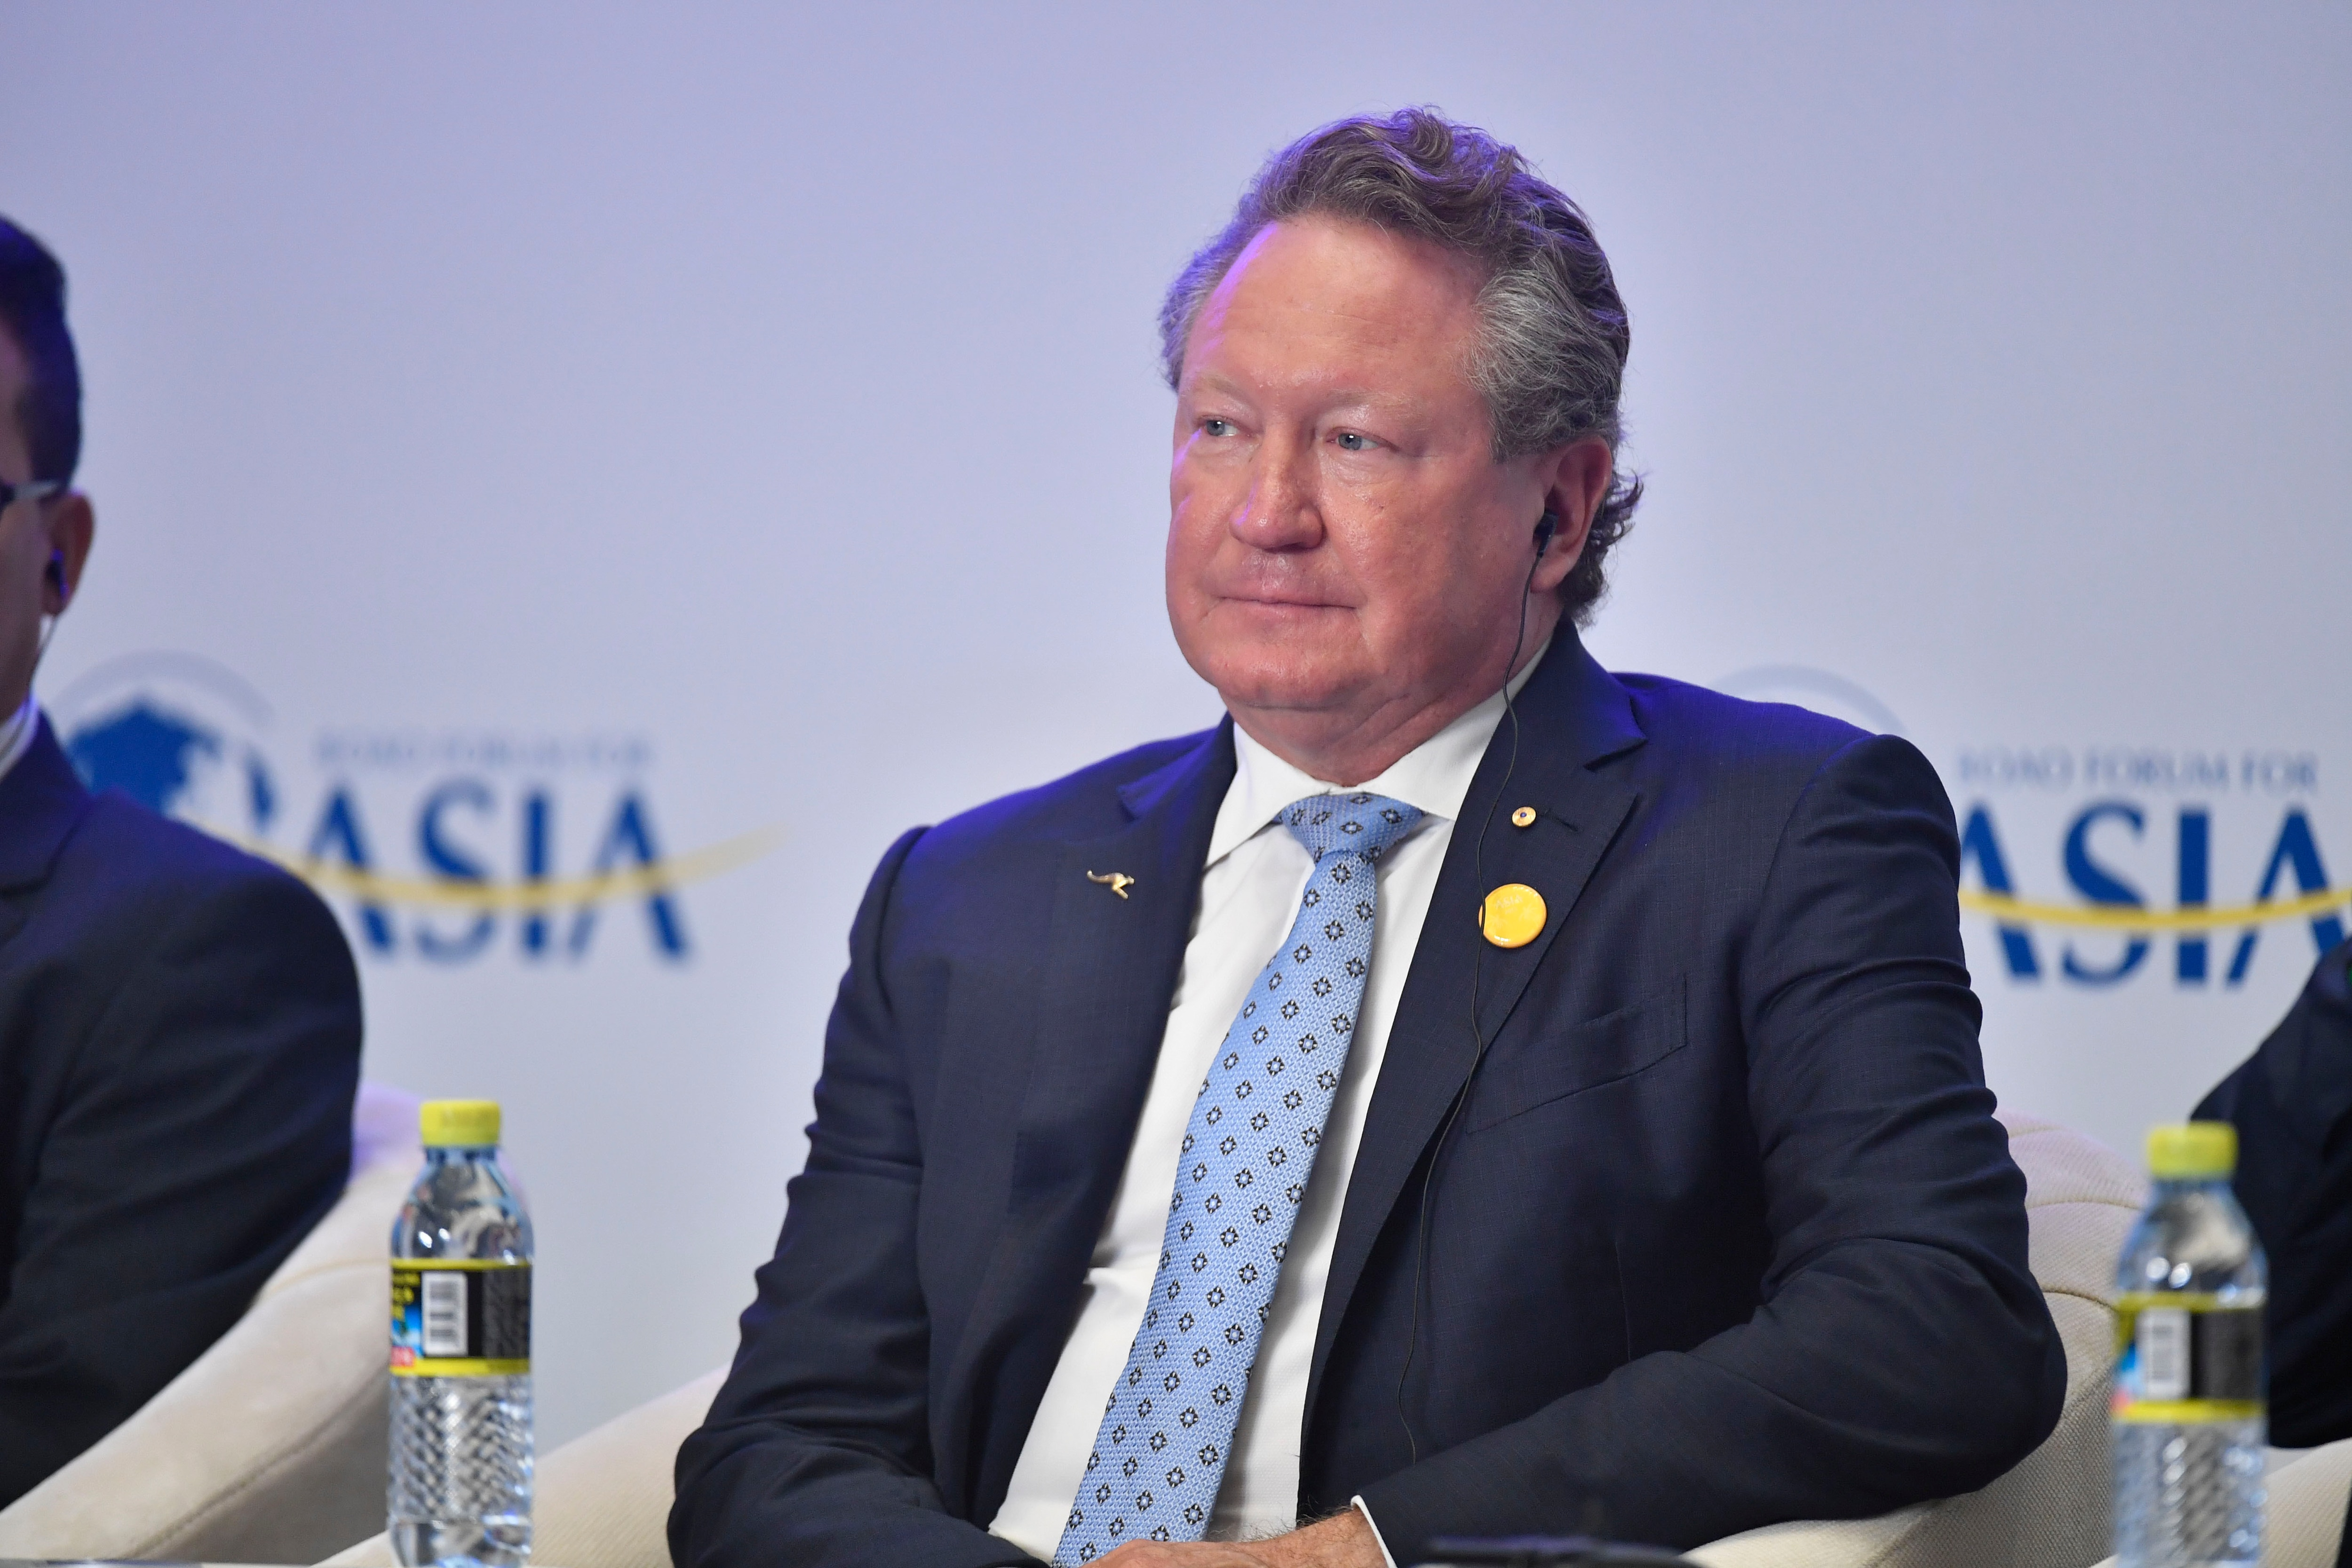 Fortescue Metals chairman Andrew Forrest will donate $70 million to bushfire relief.